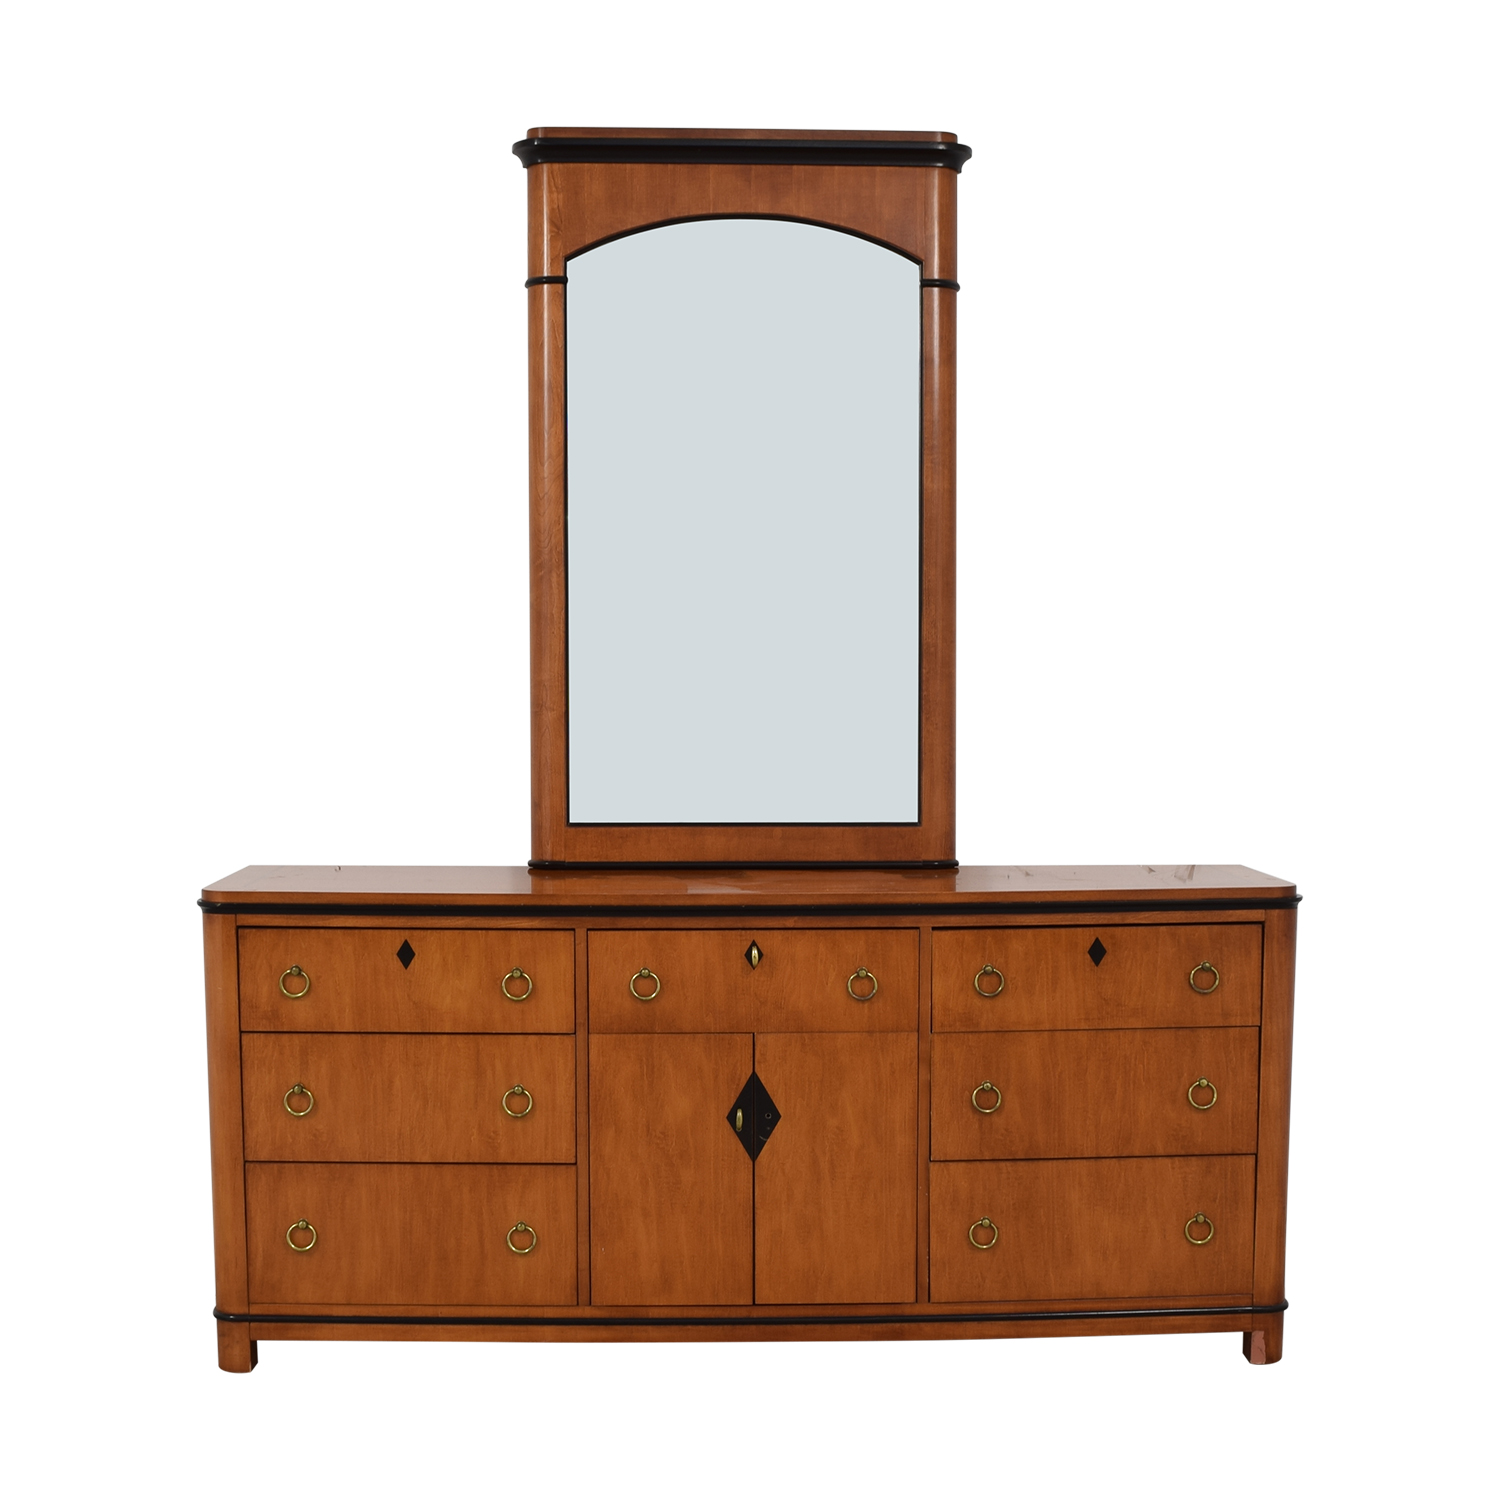 Biedermeier Biedermeier National Mt Airy Nine Drawer Dresser with Mirror for sale